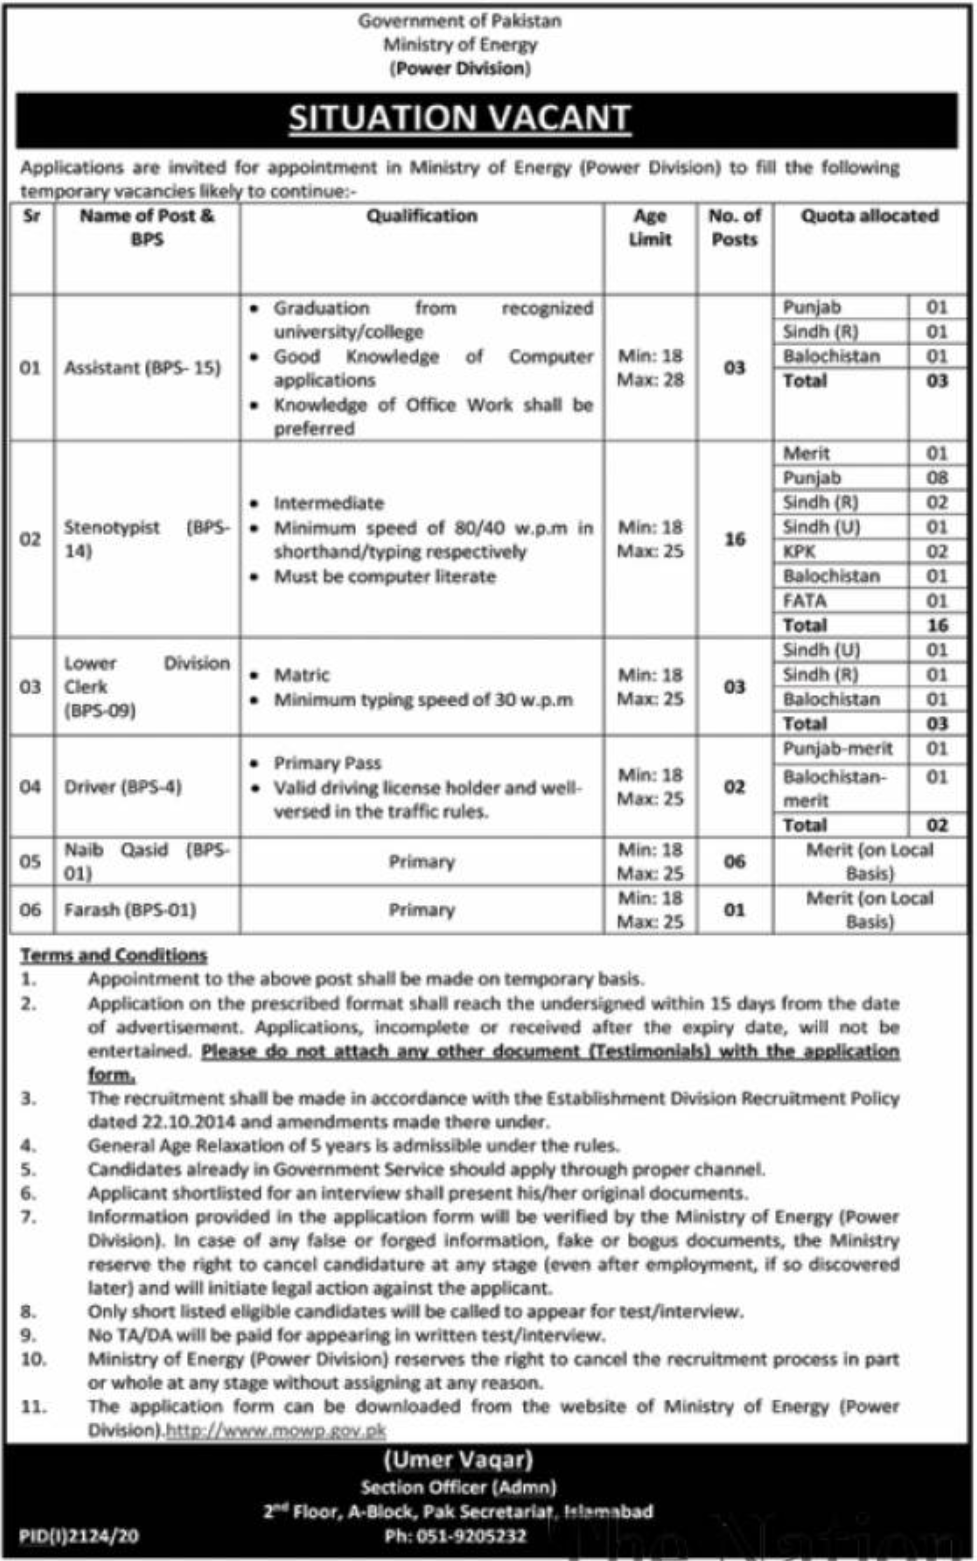 Government of Pakistan Ministry of Energy Jobs October 2020